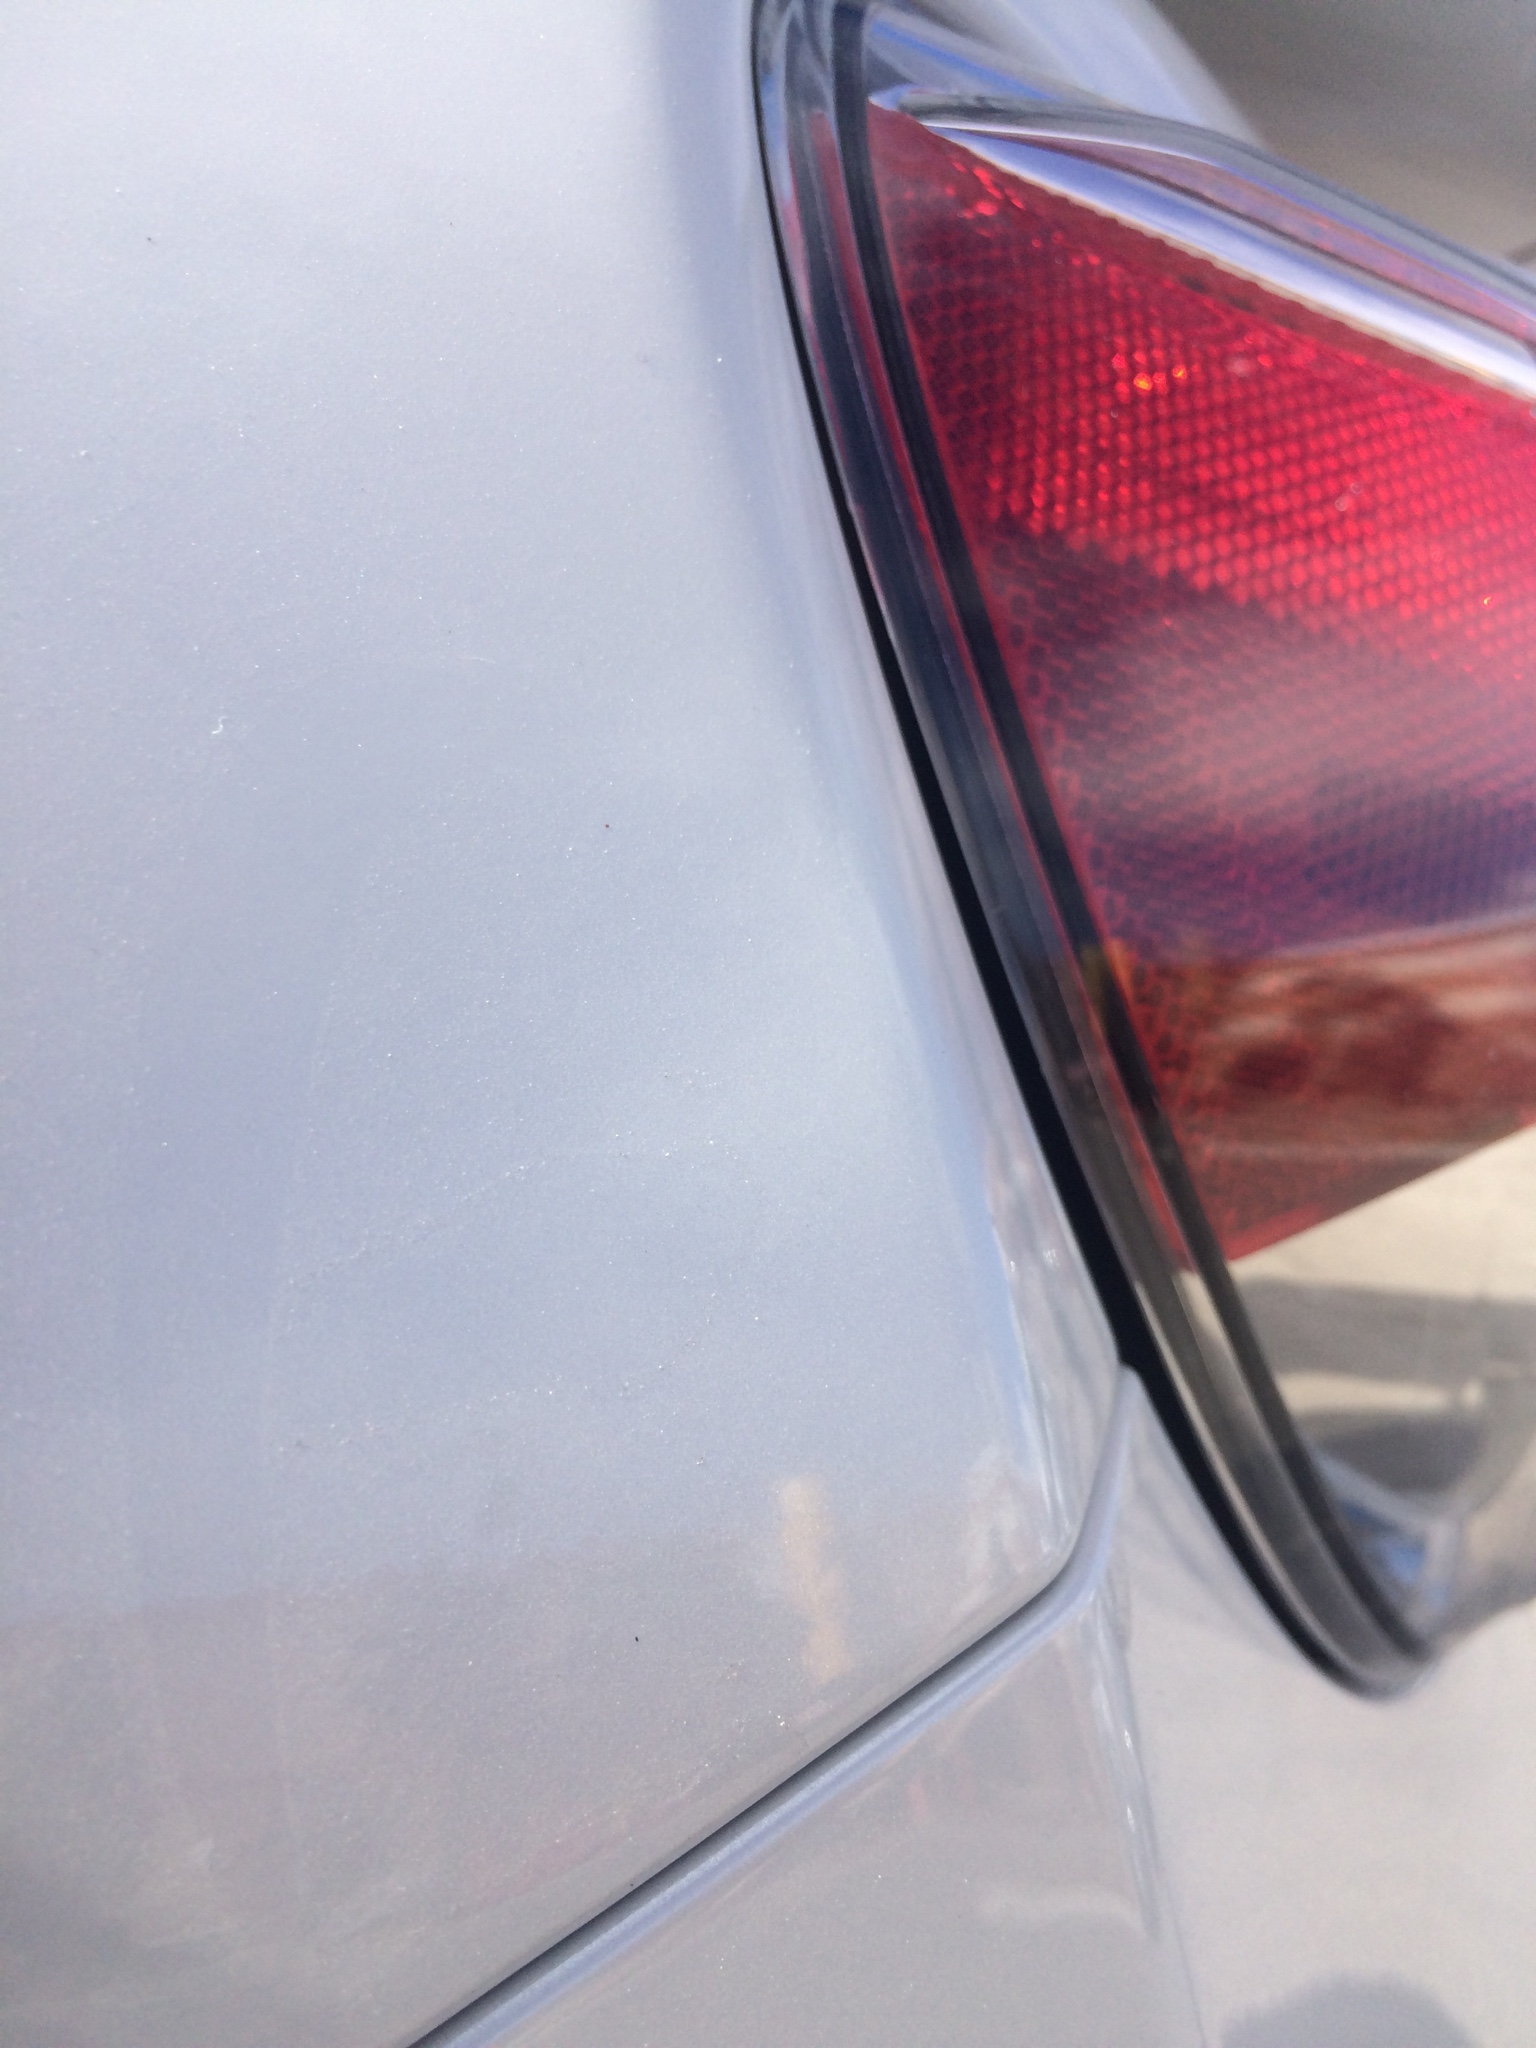 Car Not Fixed Properly After Accident